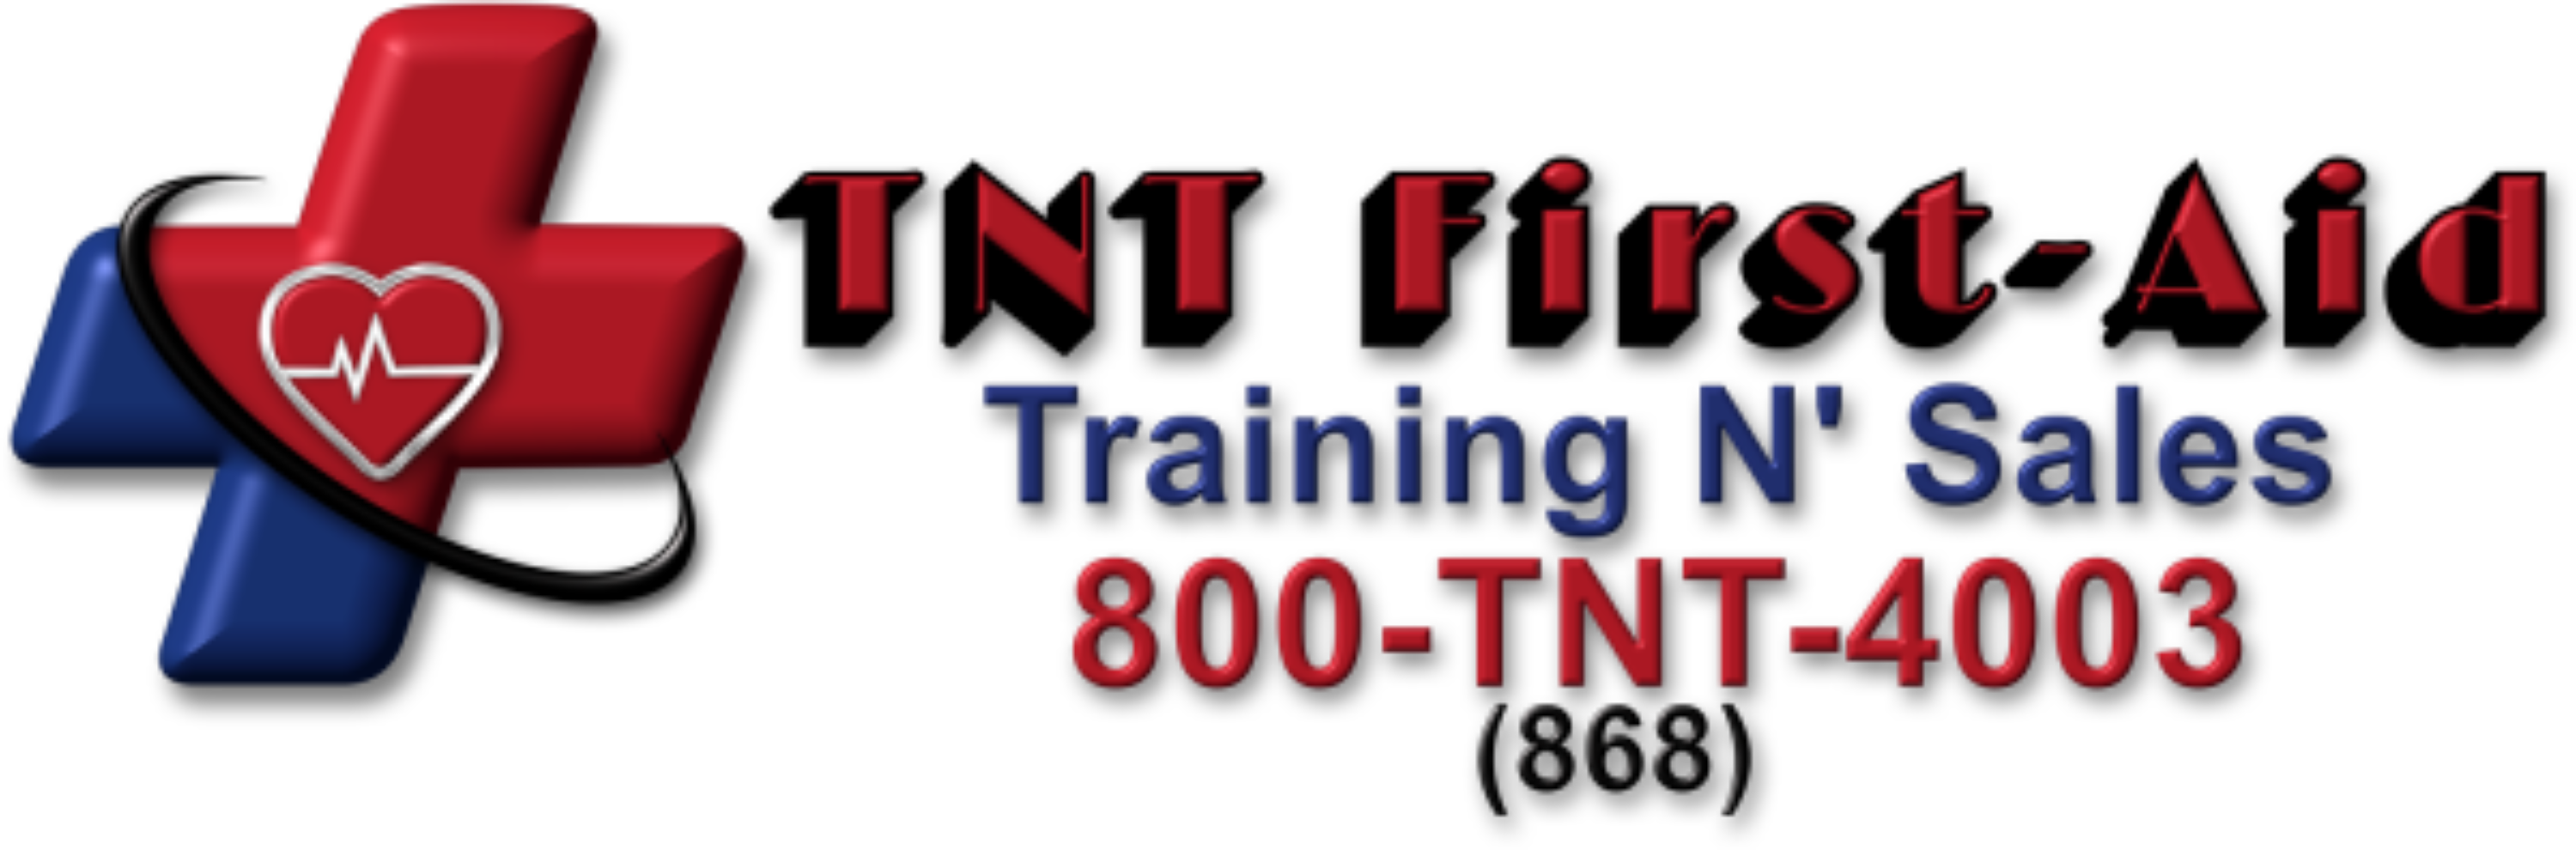 First-Aid Training and Sales